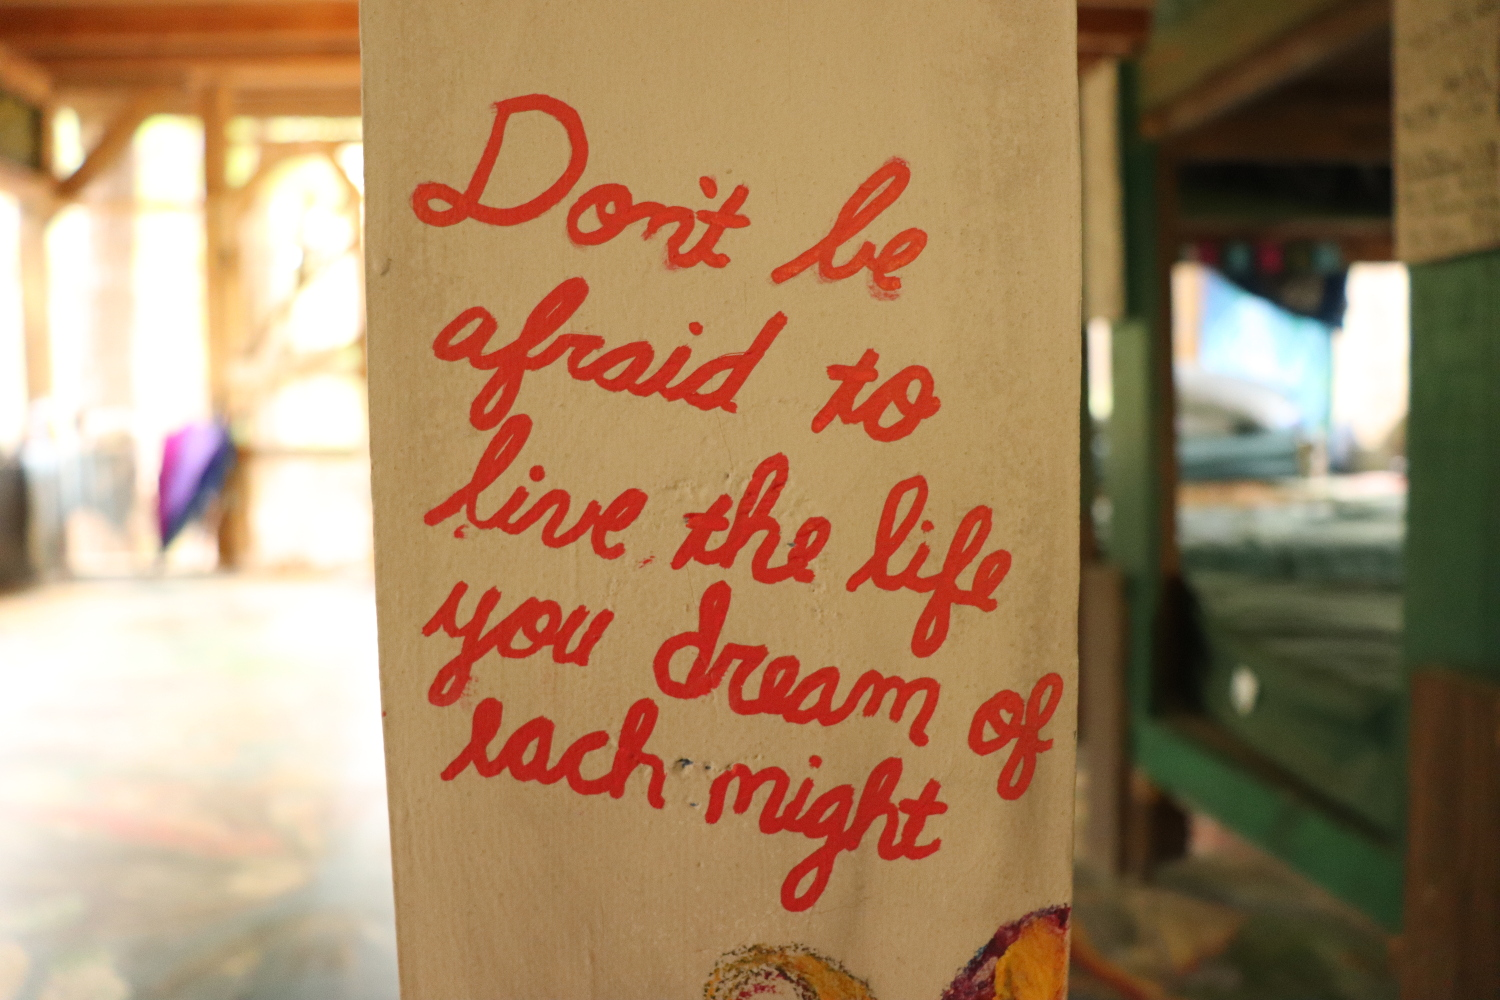 Live your dreams each night!